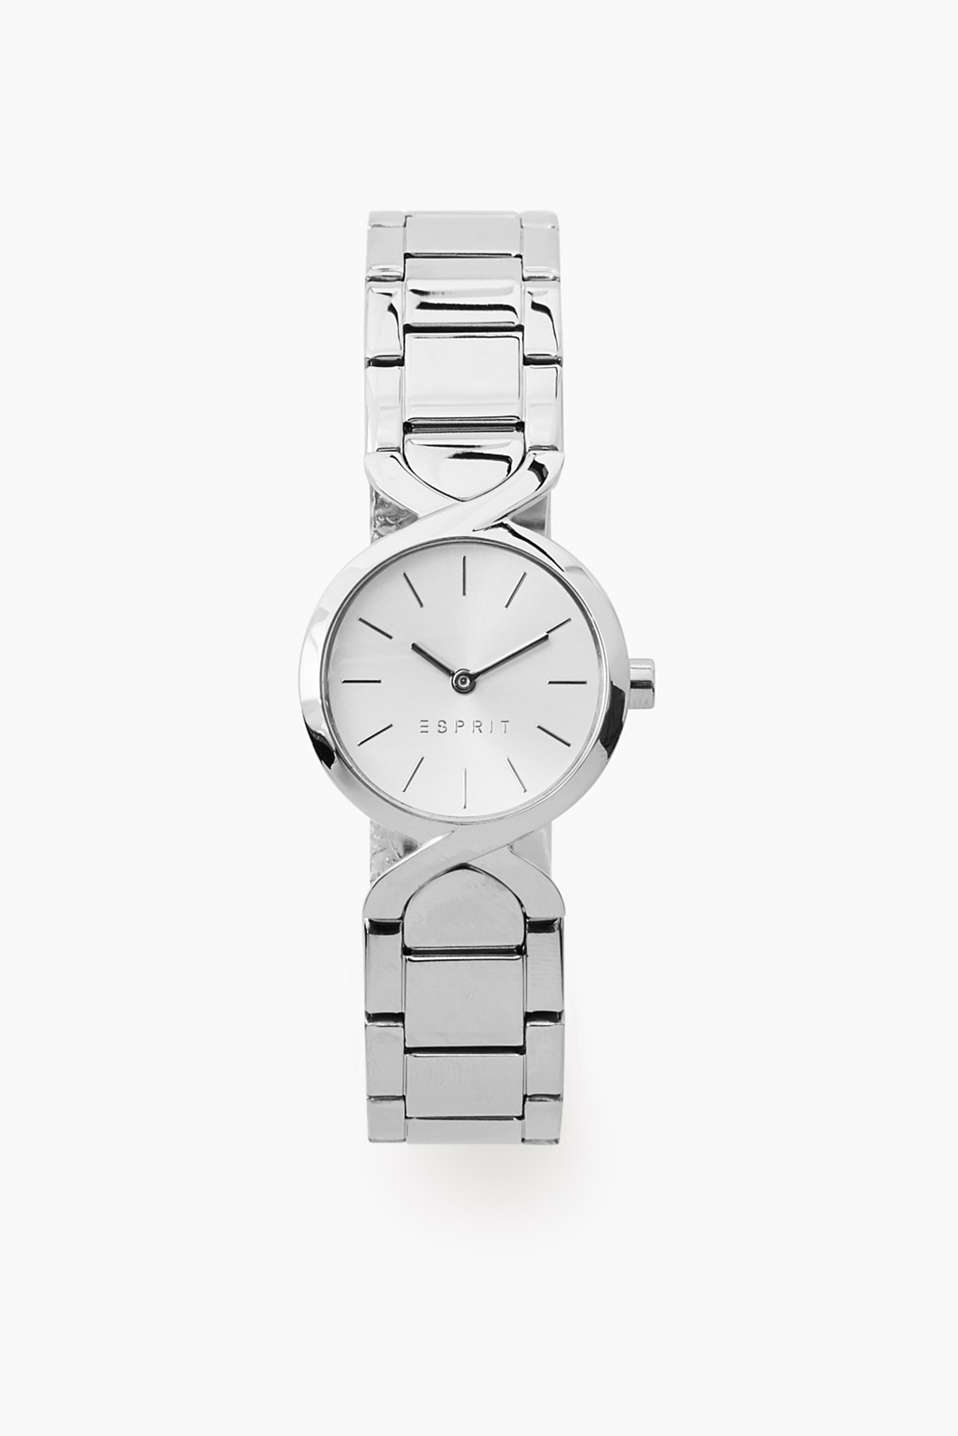 In a curved X design: watch with stainless steel casing, curved mountings and a link strap, Ø approx. 26 mm